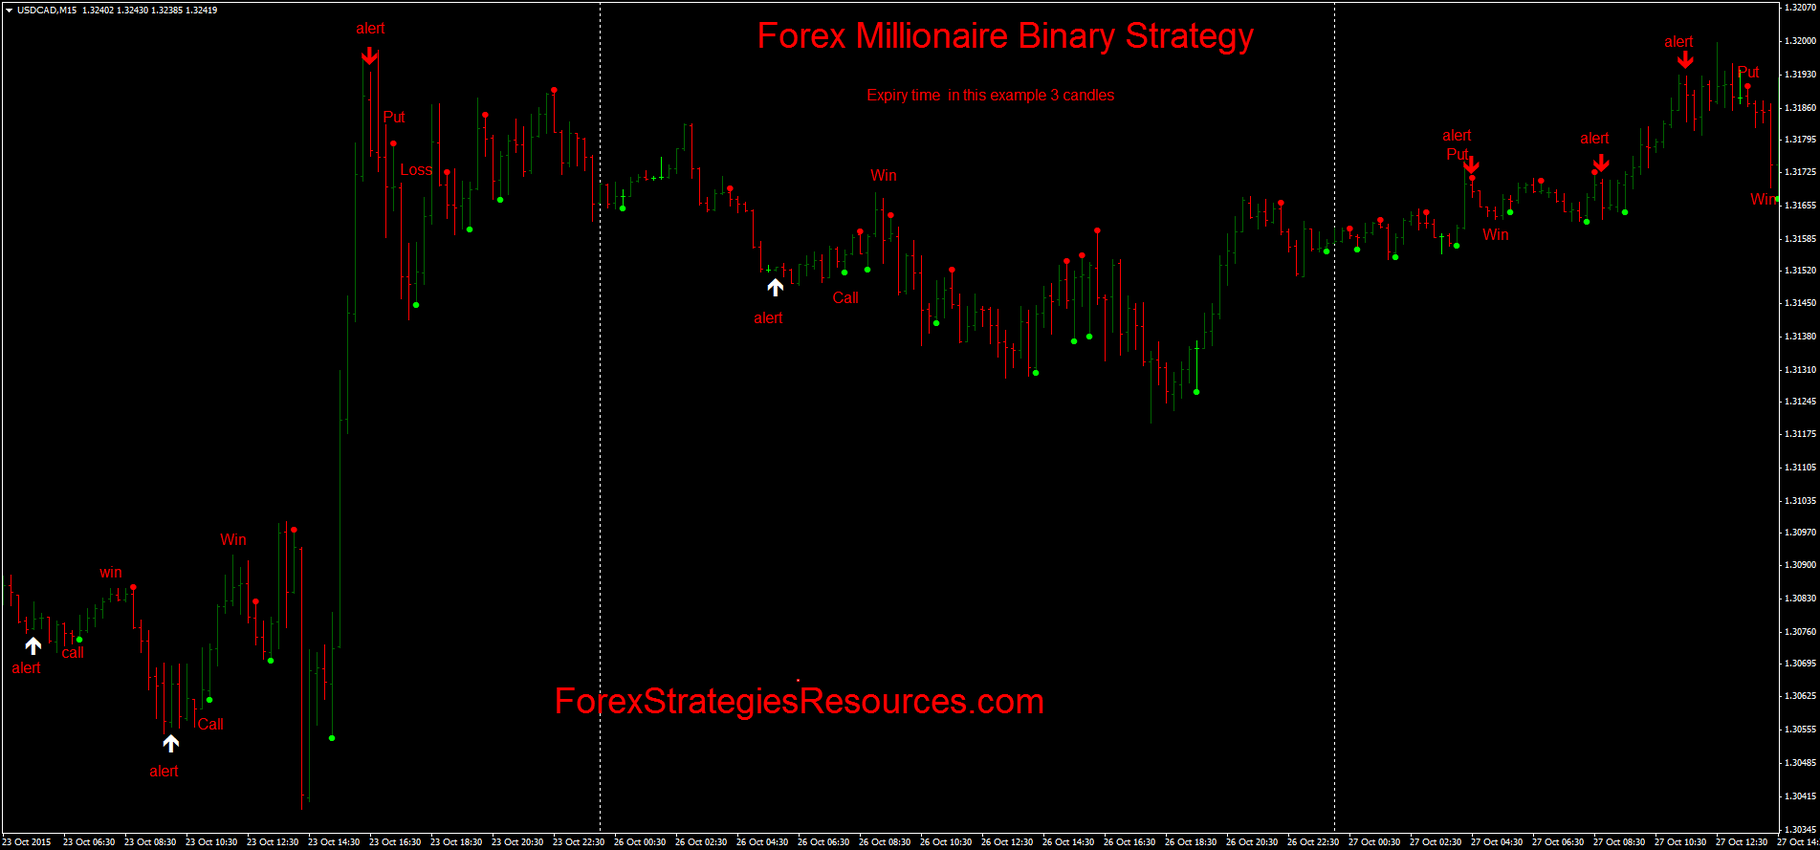 Strategia: binary options range usando pattern di formazioni a triangolo